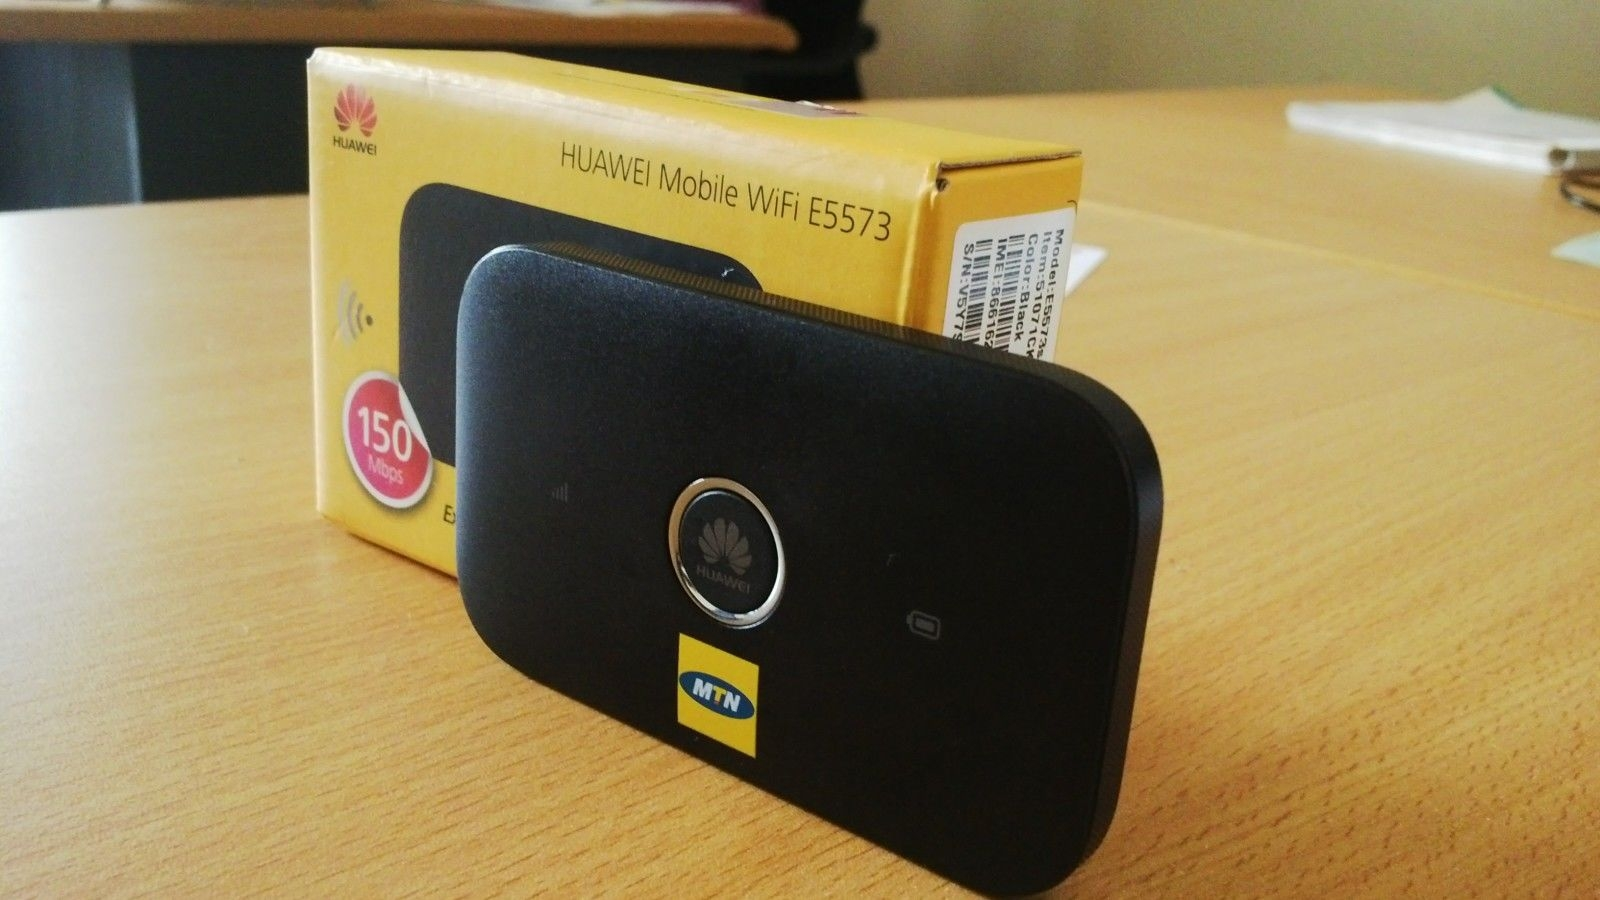 Image result for mtn WIFI POCKET E5573S-156